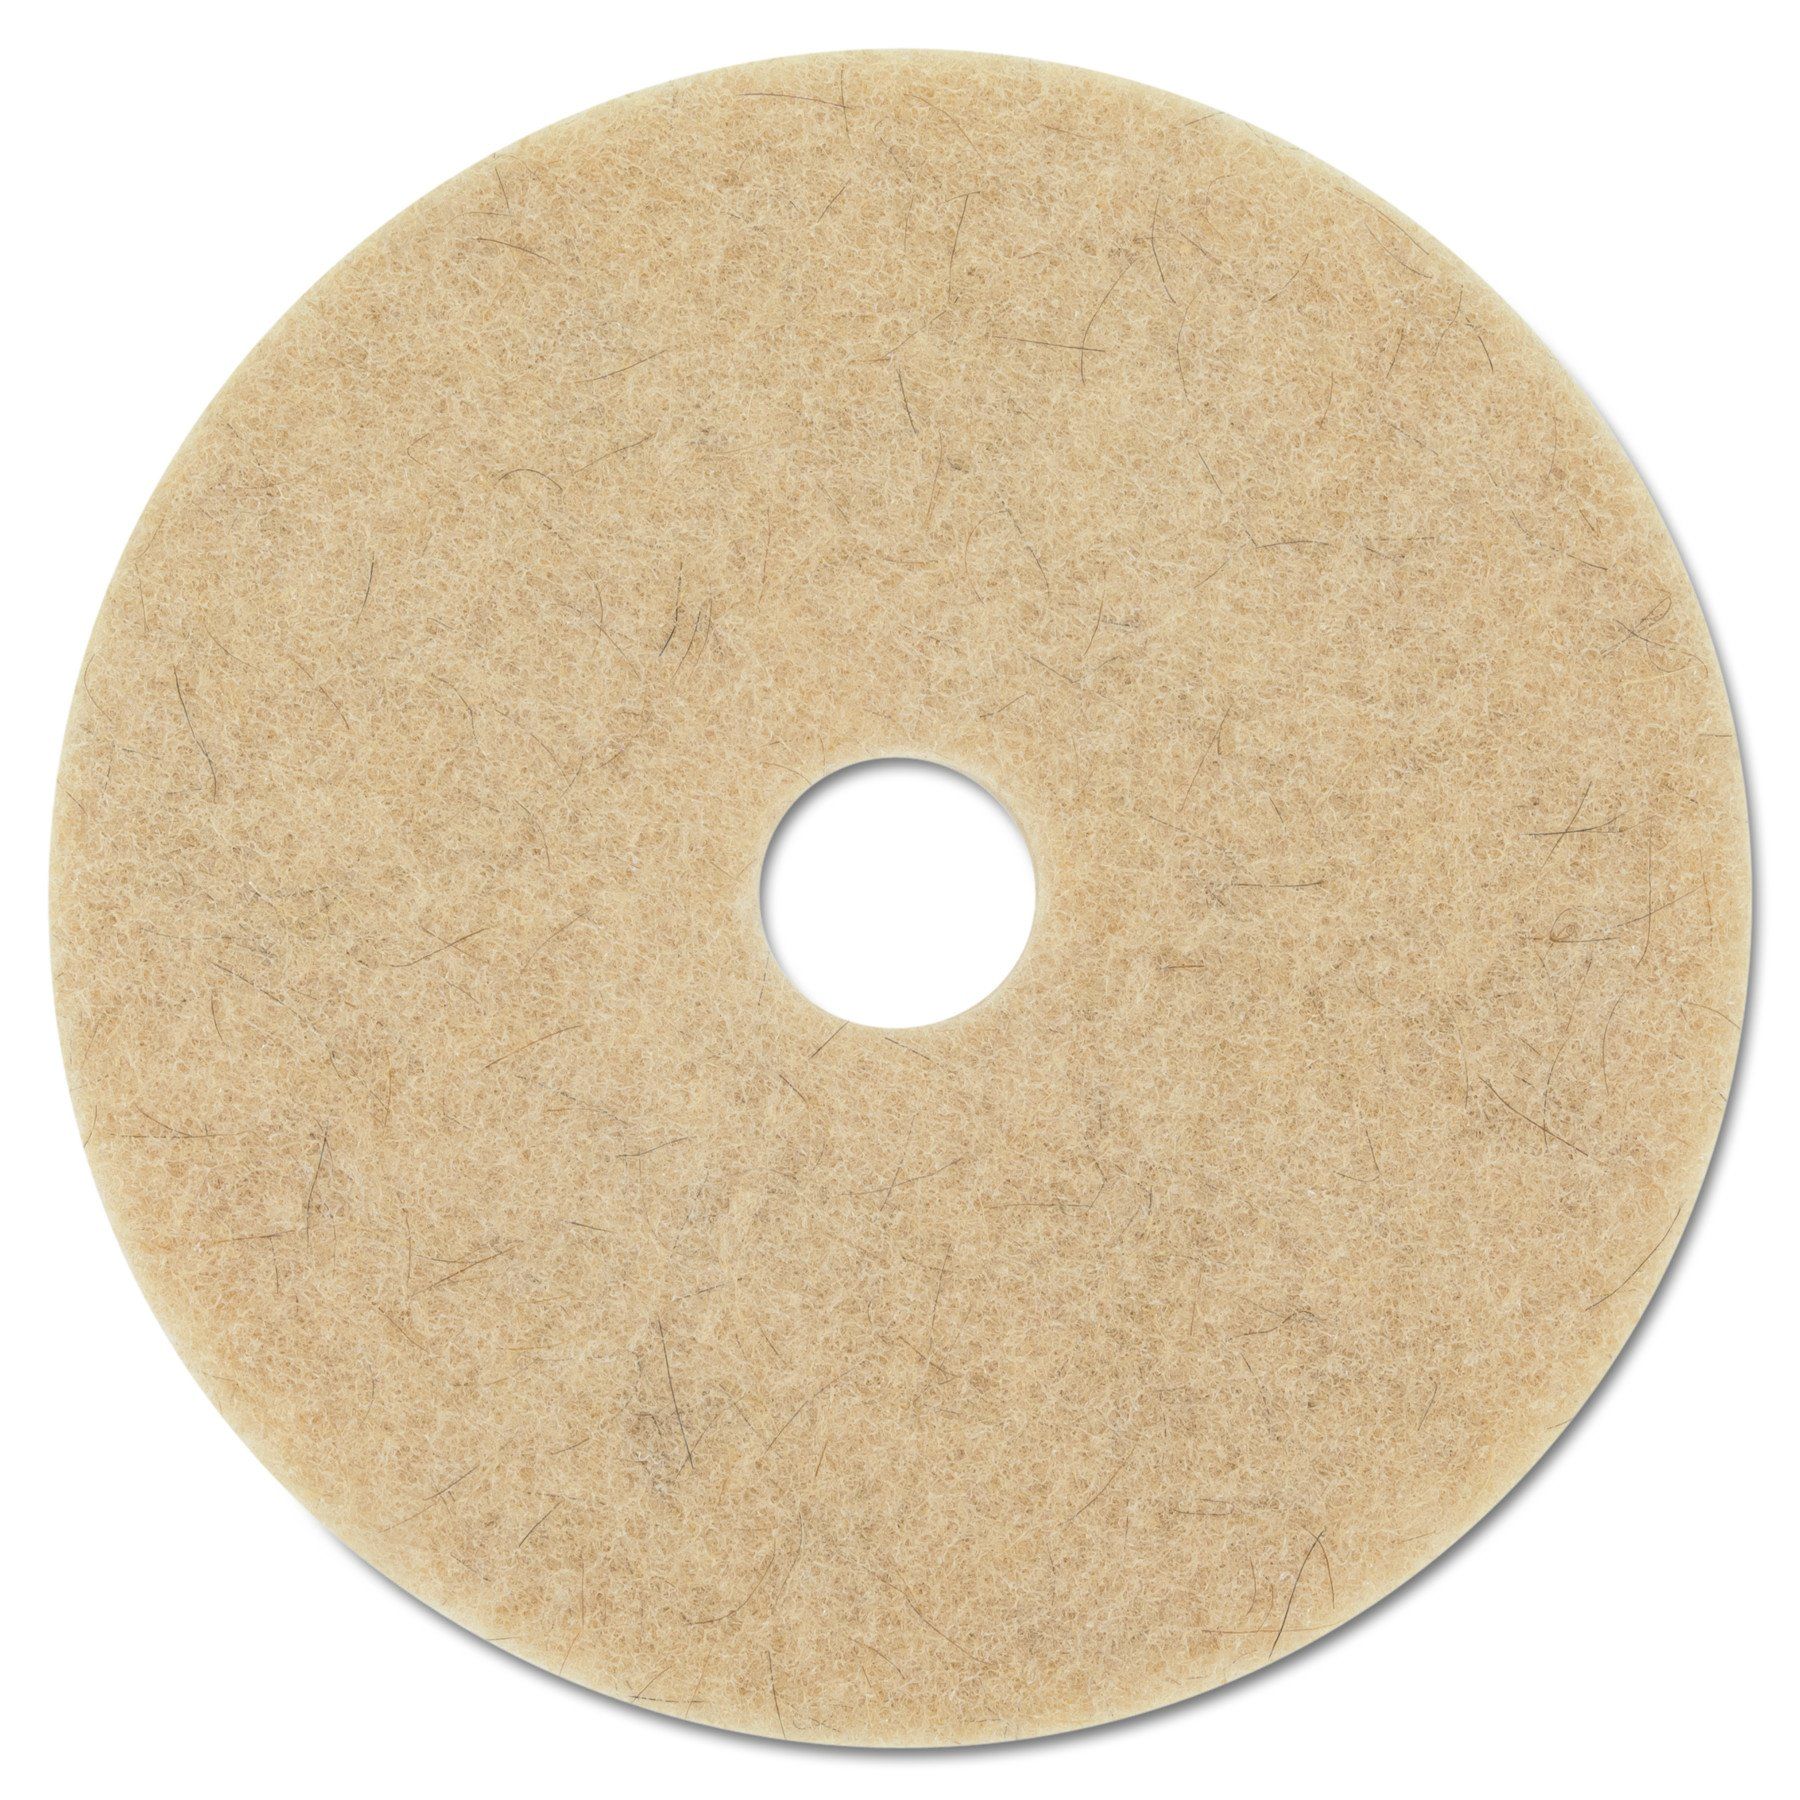 3M MCO 20317 Ultra High-Speed Natural Blend Floor Burnishing Pads, 27'', Tan (Pack of 5) by 3M